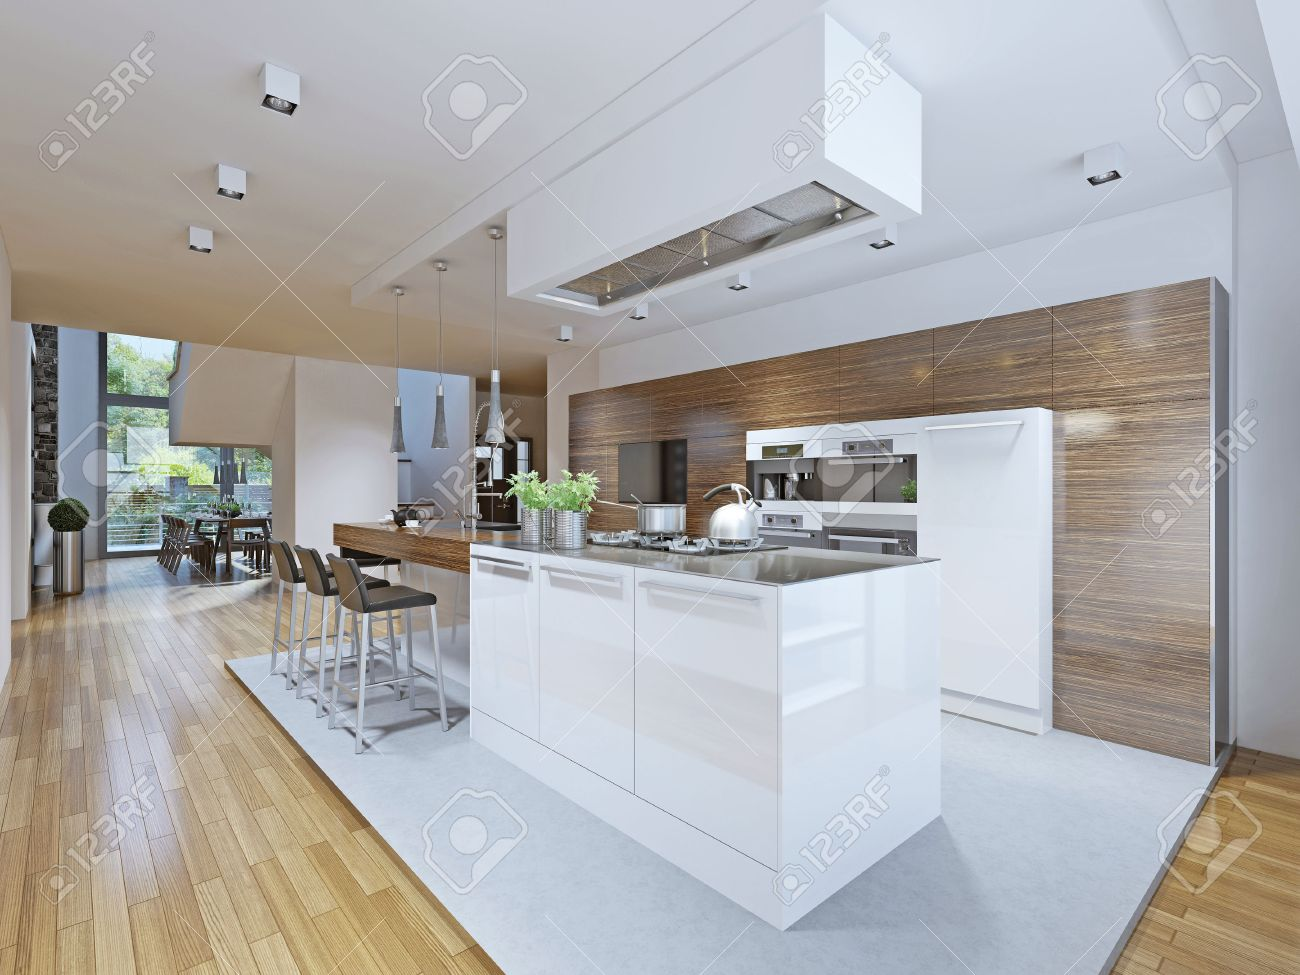 Bright kitchen avant-garde style. Kitchen cabinets and countertop..